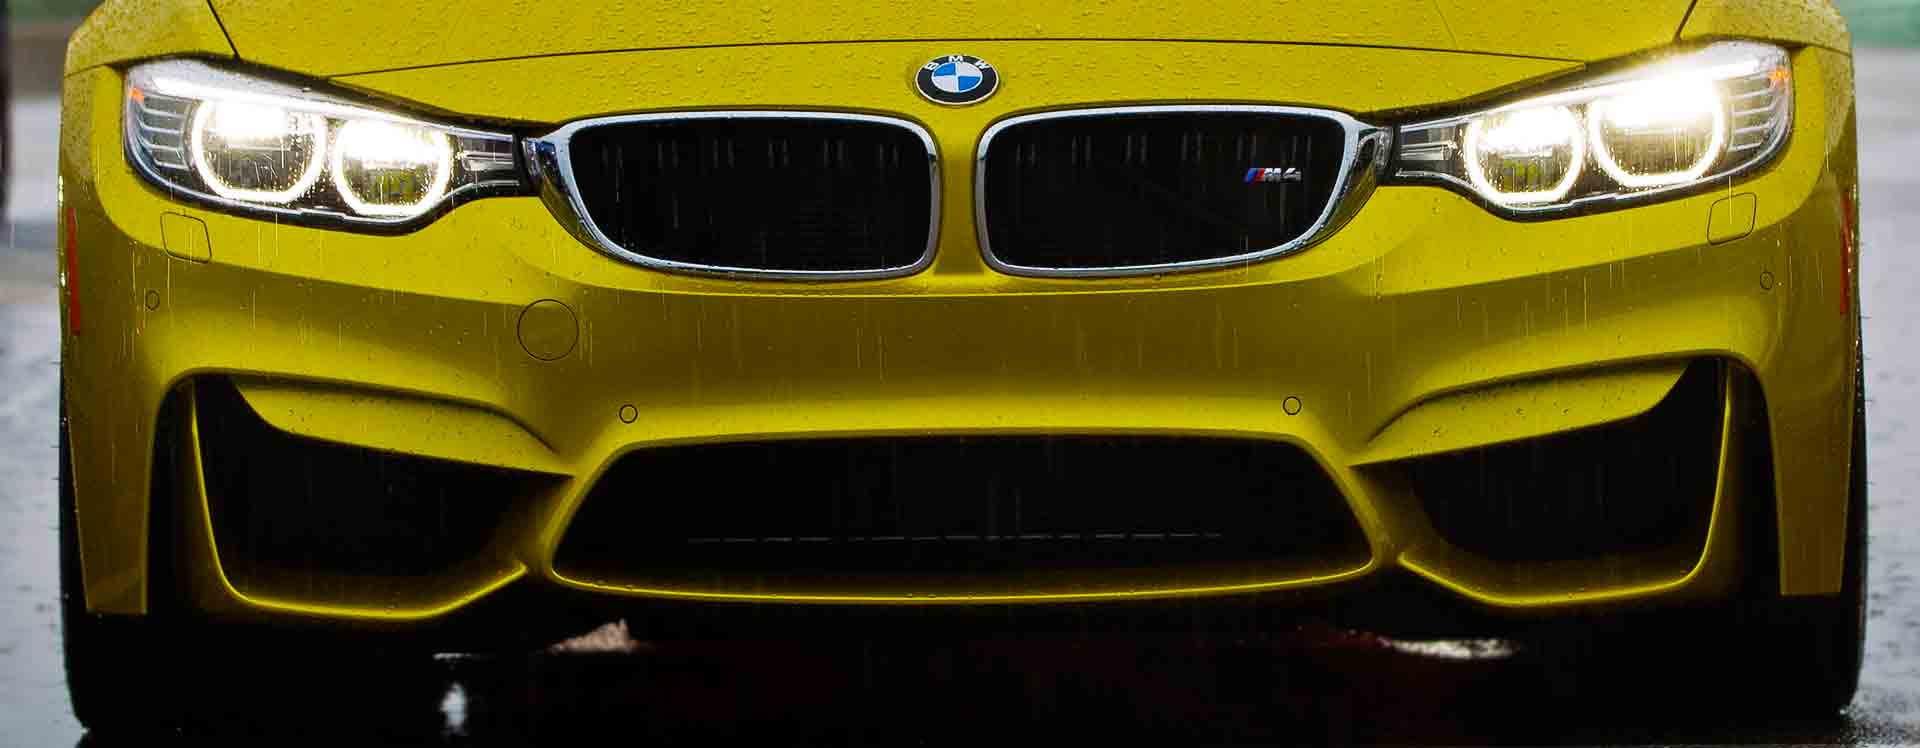 Bmw Car Wash Guide Wash Your Bmw In 5 Easy Steps